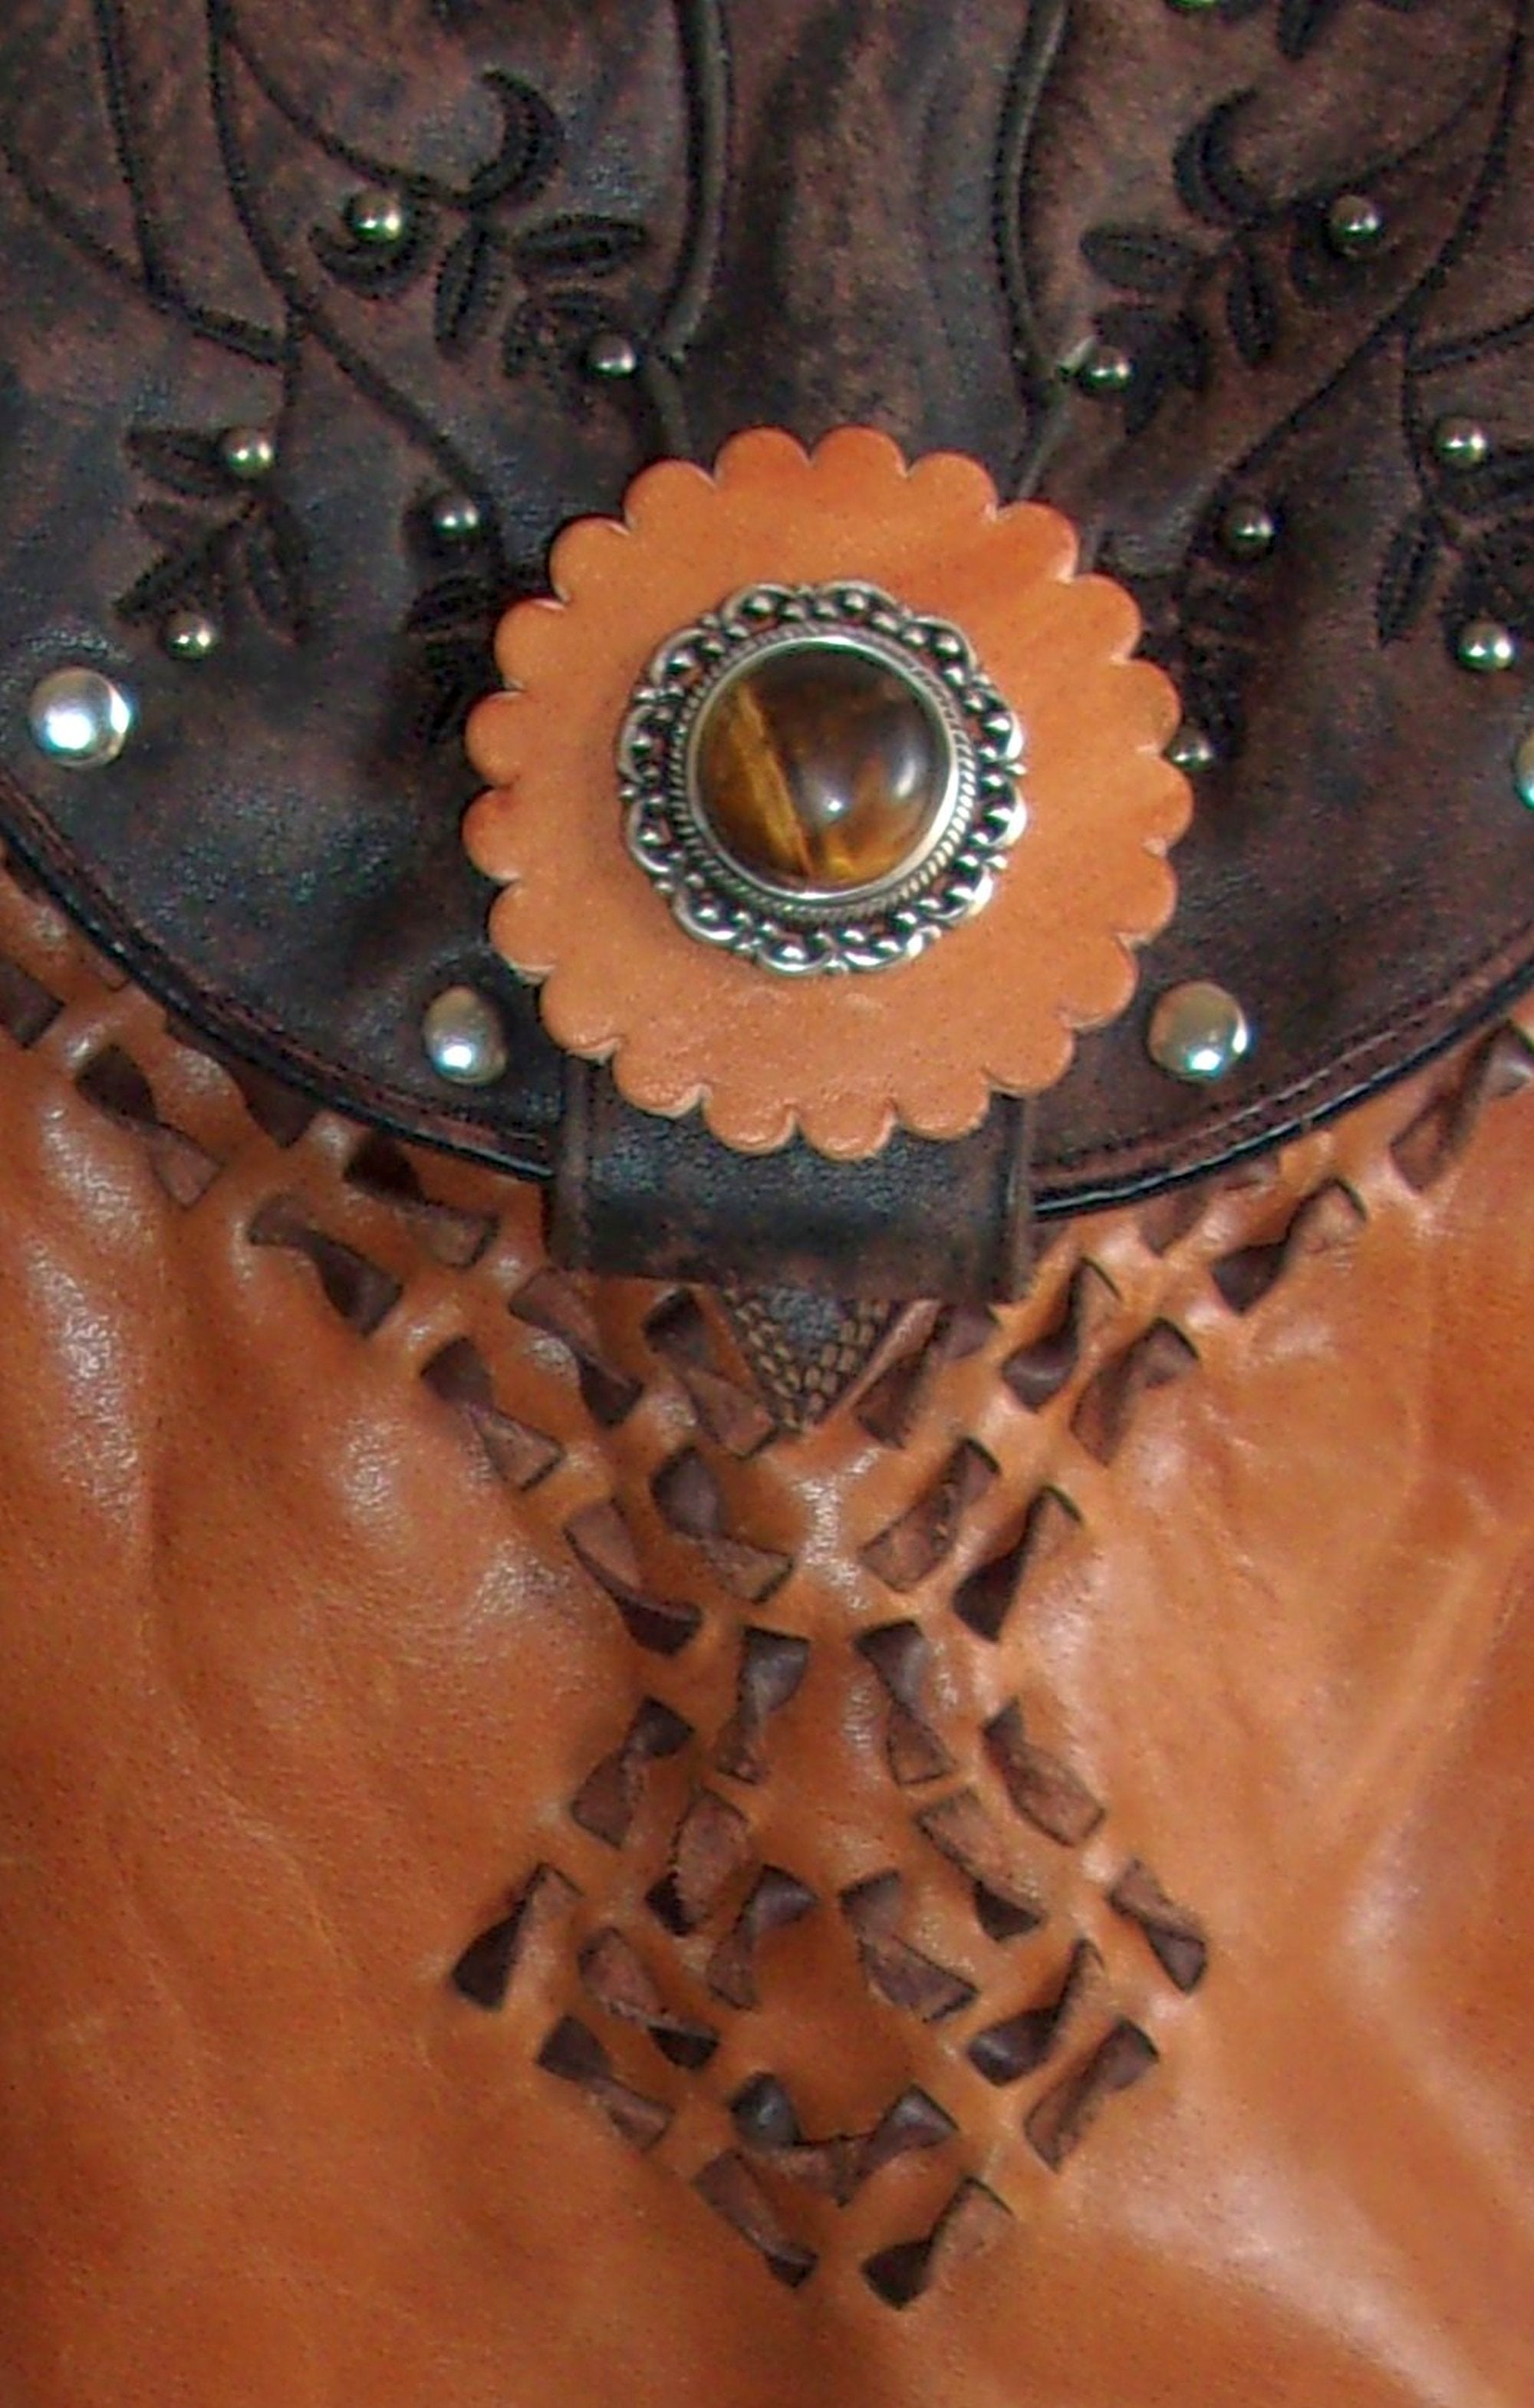 close up tigers eye fringed unique small leather purse crossbody bag handcrafted from recycled cowboy boots